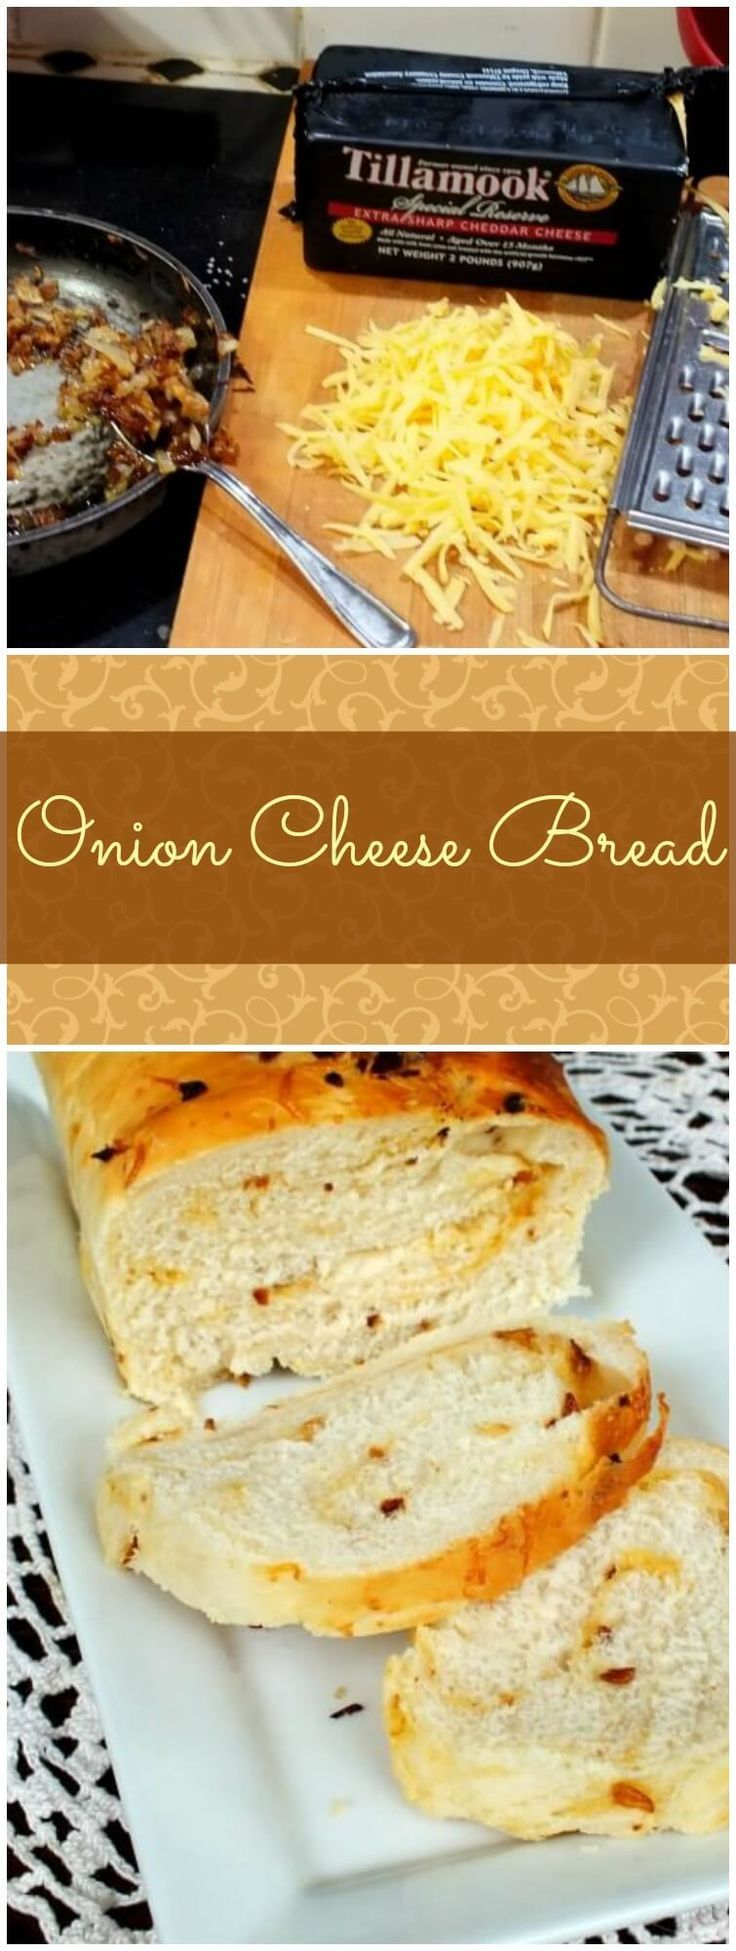 Onion cheese bread is easy to make and SO good! From http://RestlessChipotle.com